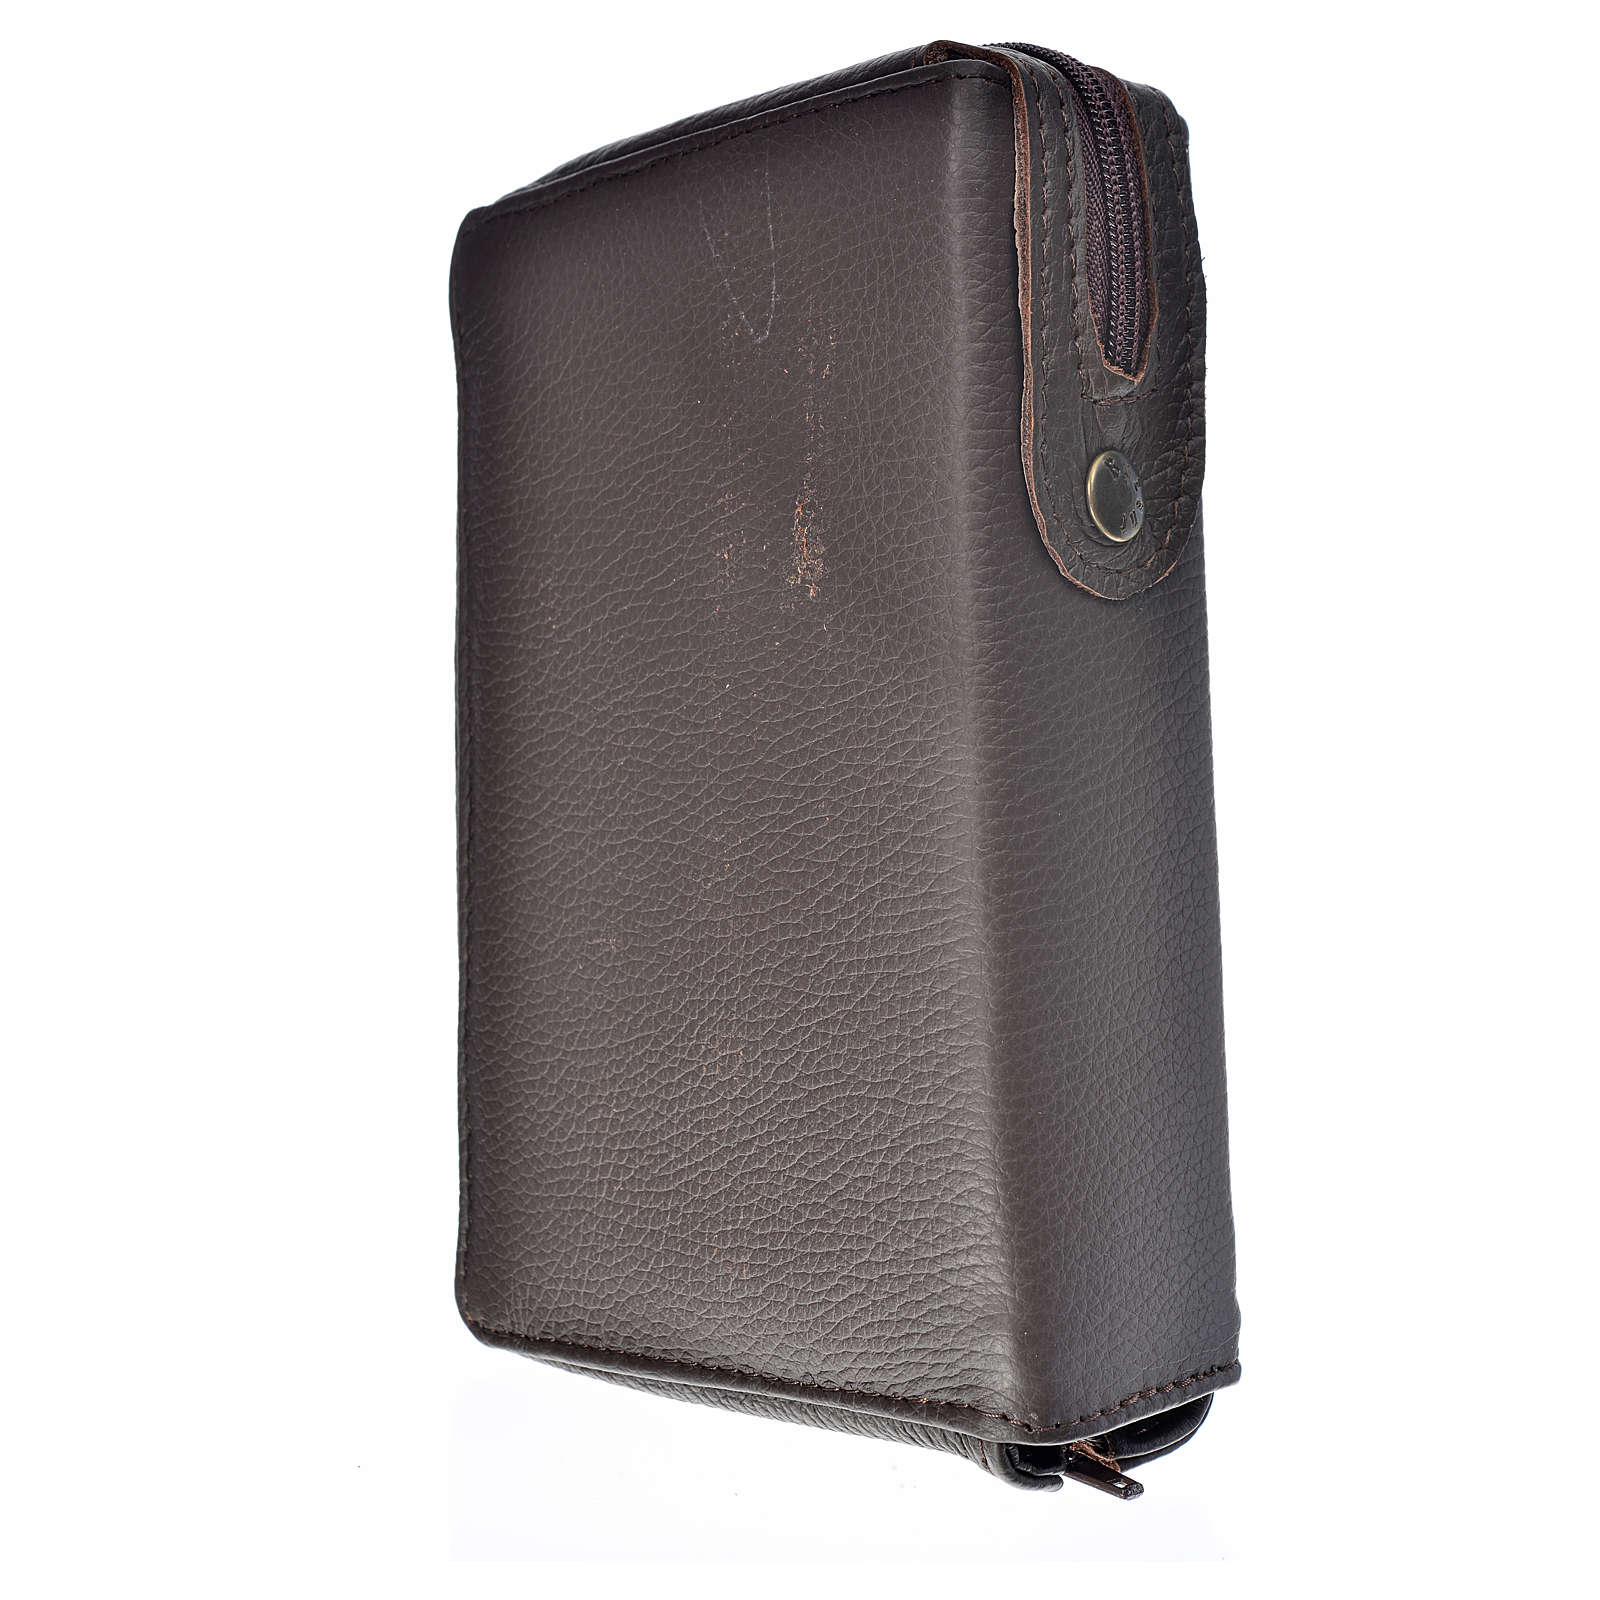 Divine Office cover dark brown leather Our Lady of Kiko 4